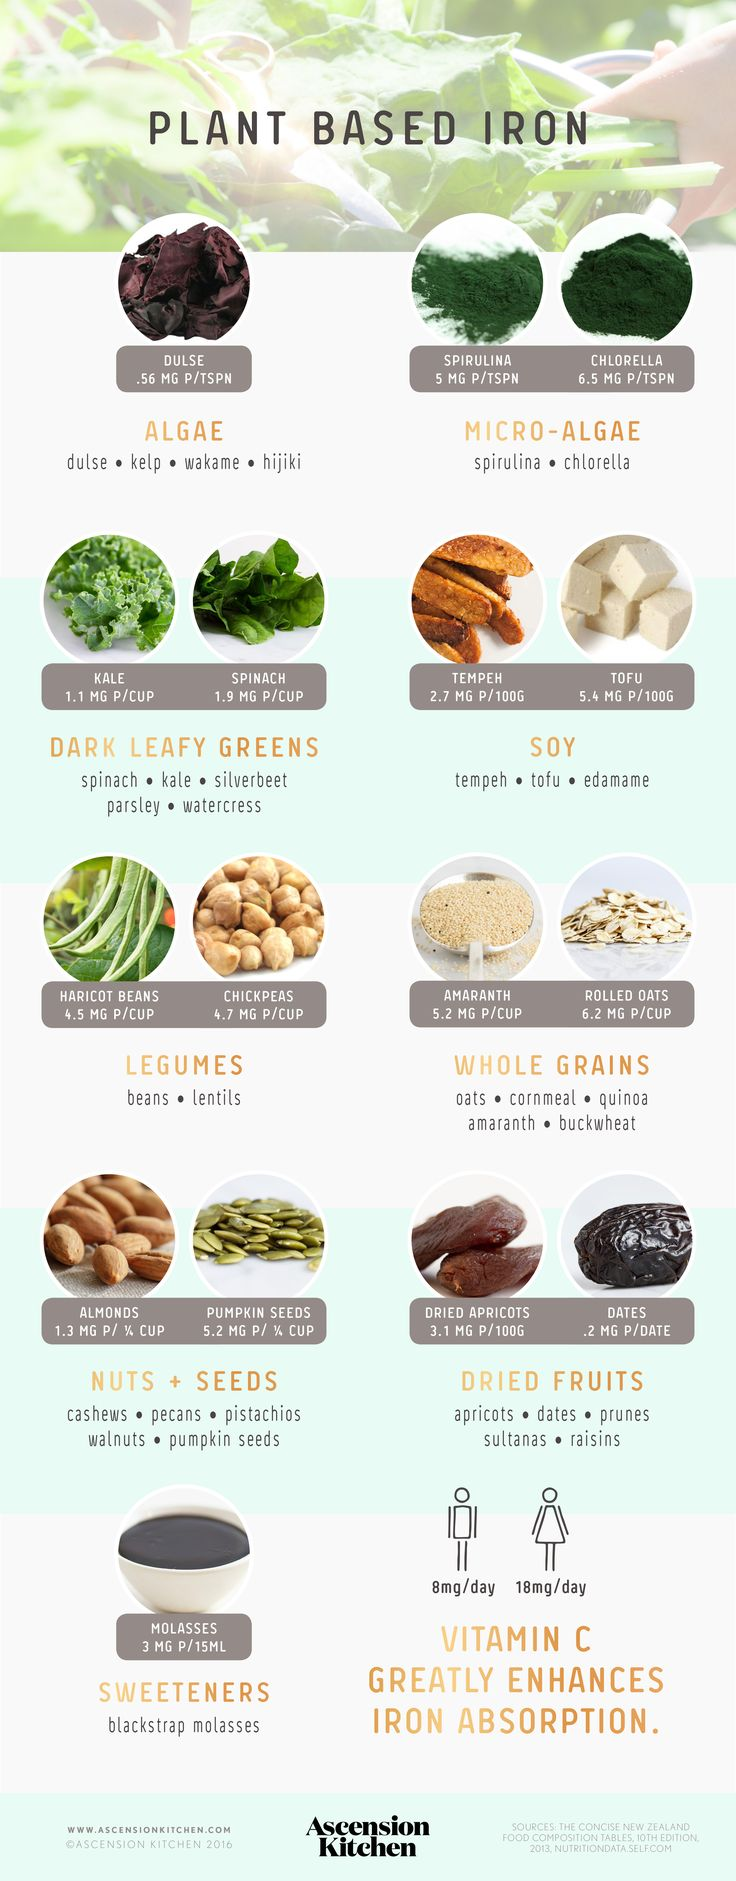 Vegan sources of Iron // Iron on a Plant Based Diet - iron is inhibited and enhanced by various dietary factors - learn how to optimise absorption of this vital mineral.  https://ascensionkitchen.com/iron-on-a-plant-based-diet/